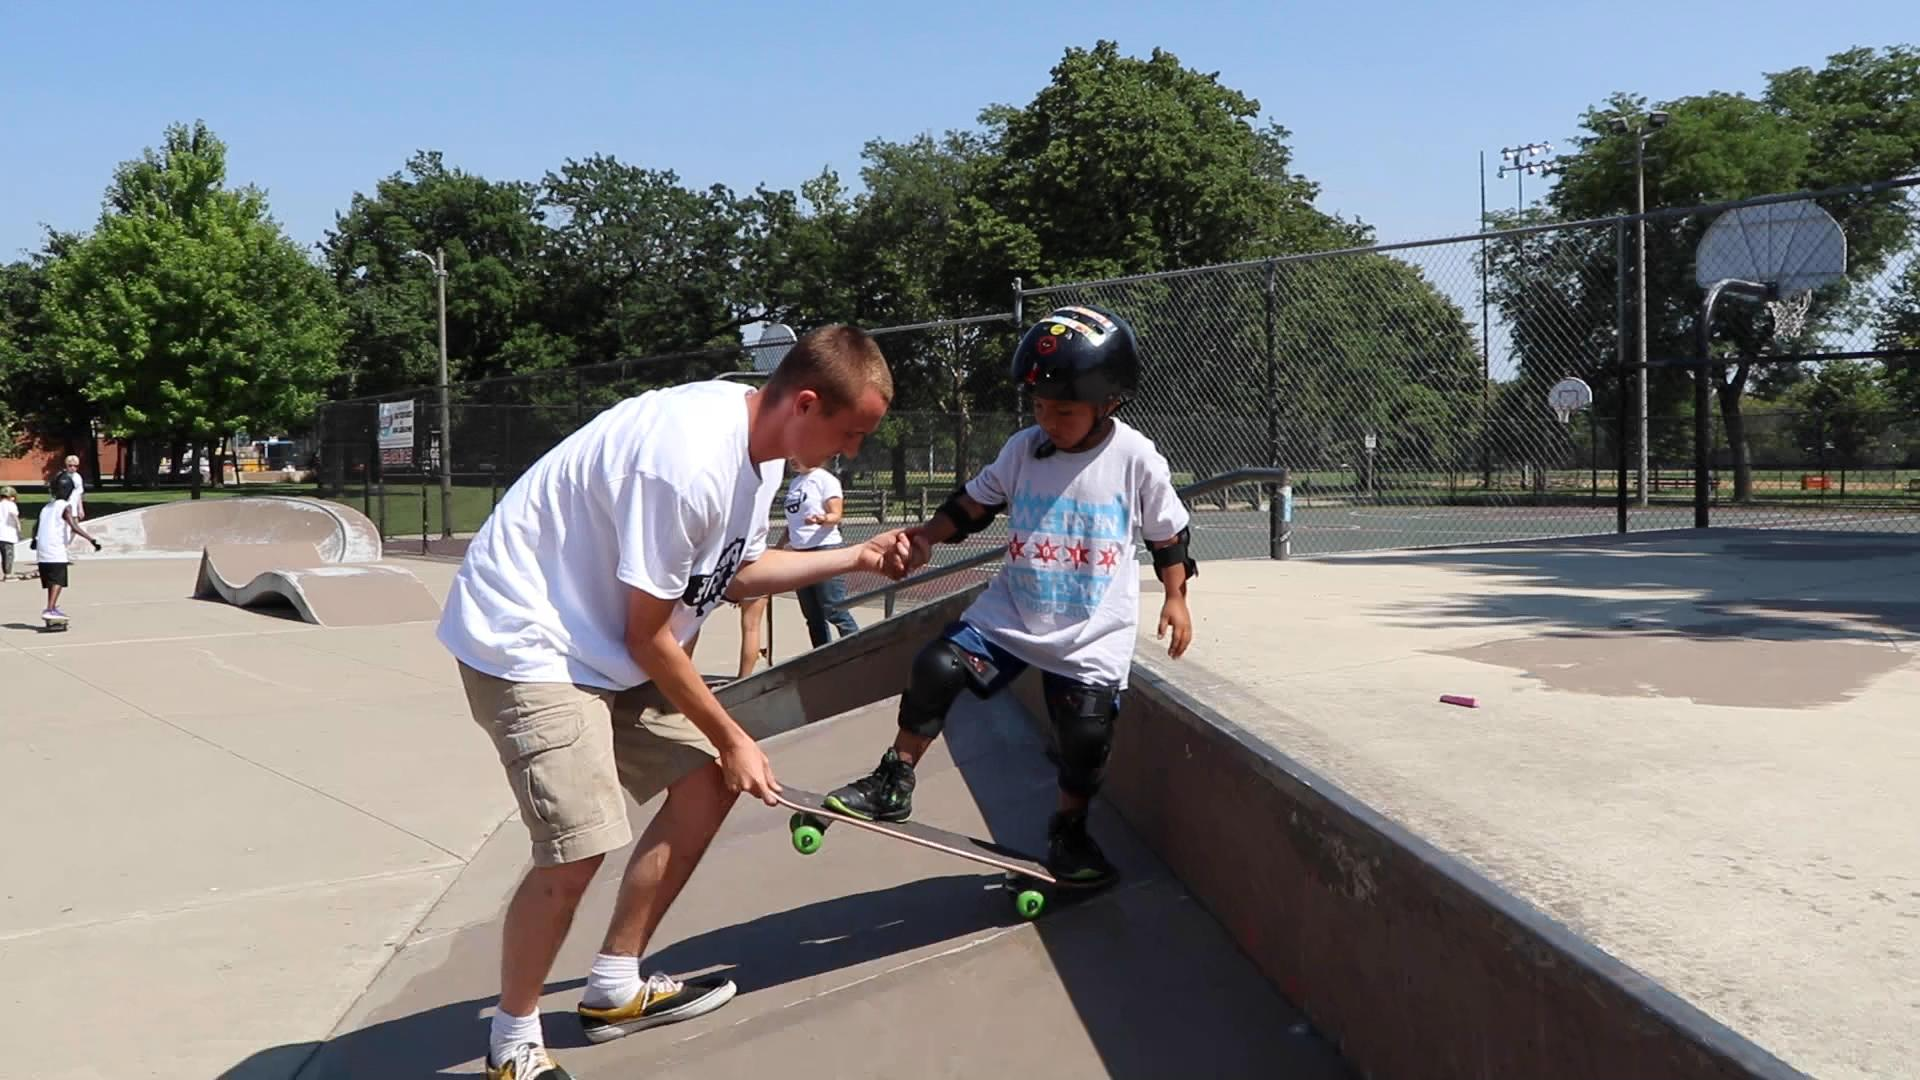 "Skate instructor Grant Katula helps a young skater ""drop in"" on a ramp at Piotrowksi Skate Park. (Evan Garcia / WTTW News)"